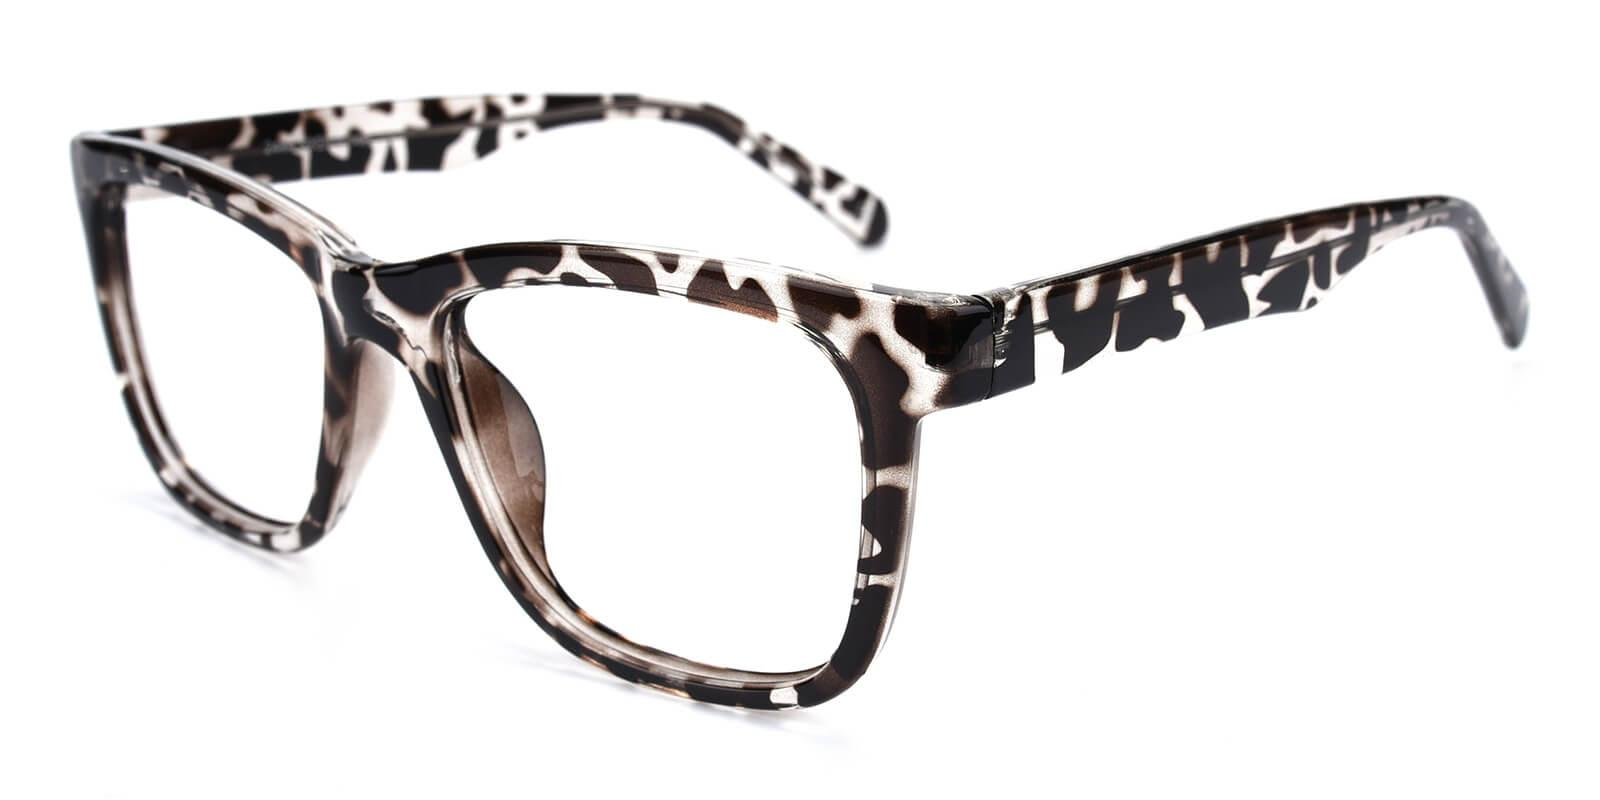 Colaan-Leopard-Square-Plastic-Eyeglasses-additional1